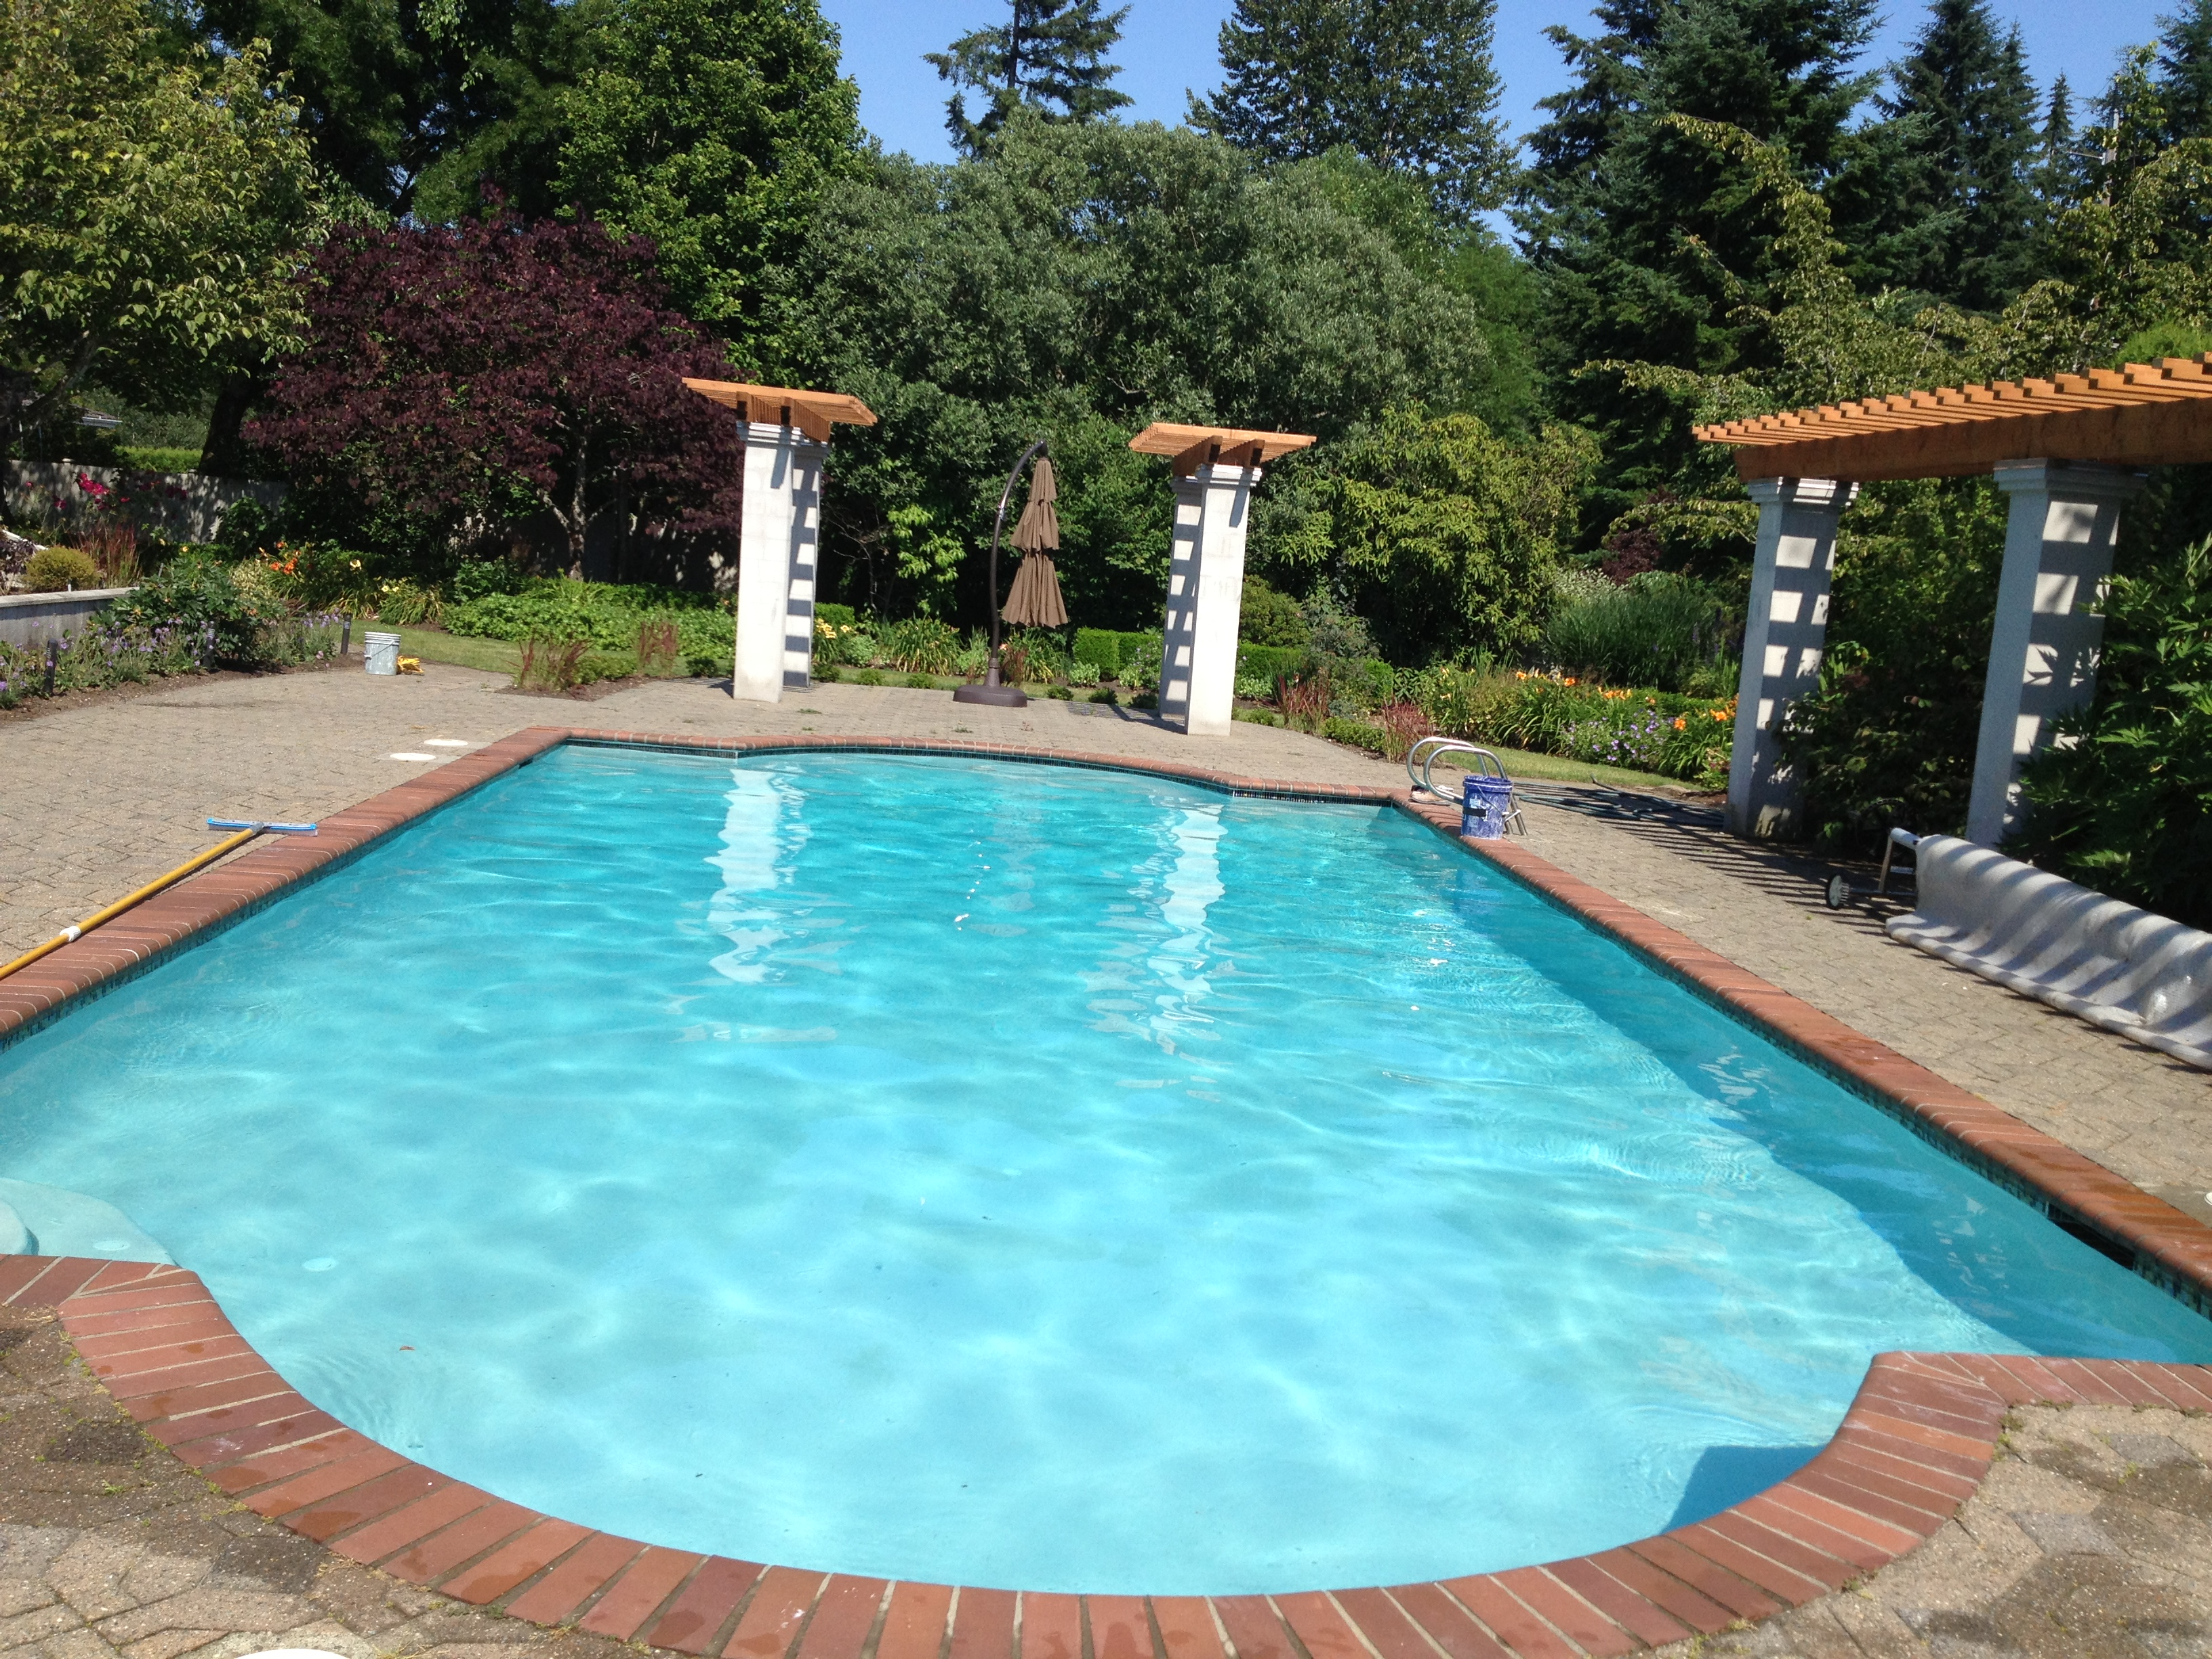 Seattle pool spa builder local swimming pool contractors for Local swimming pool companies